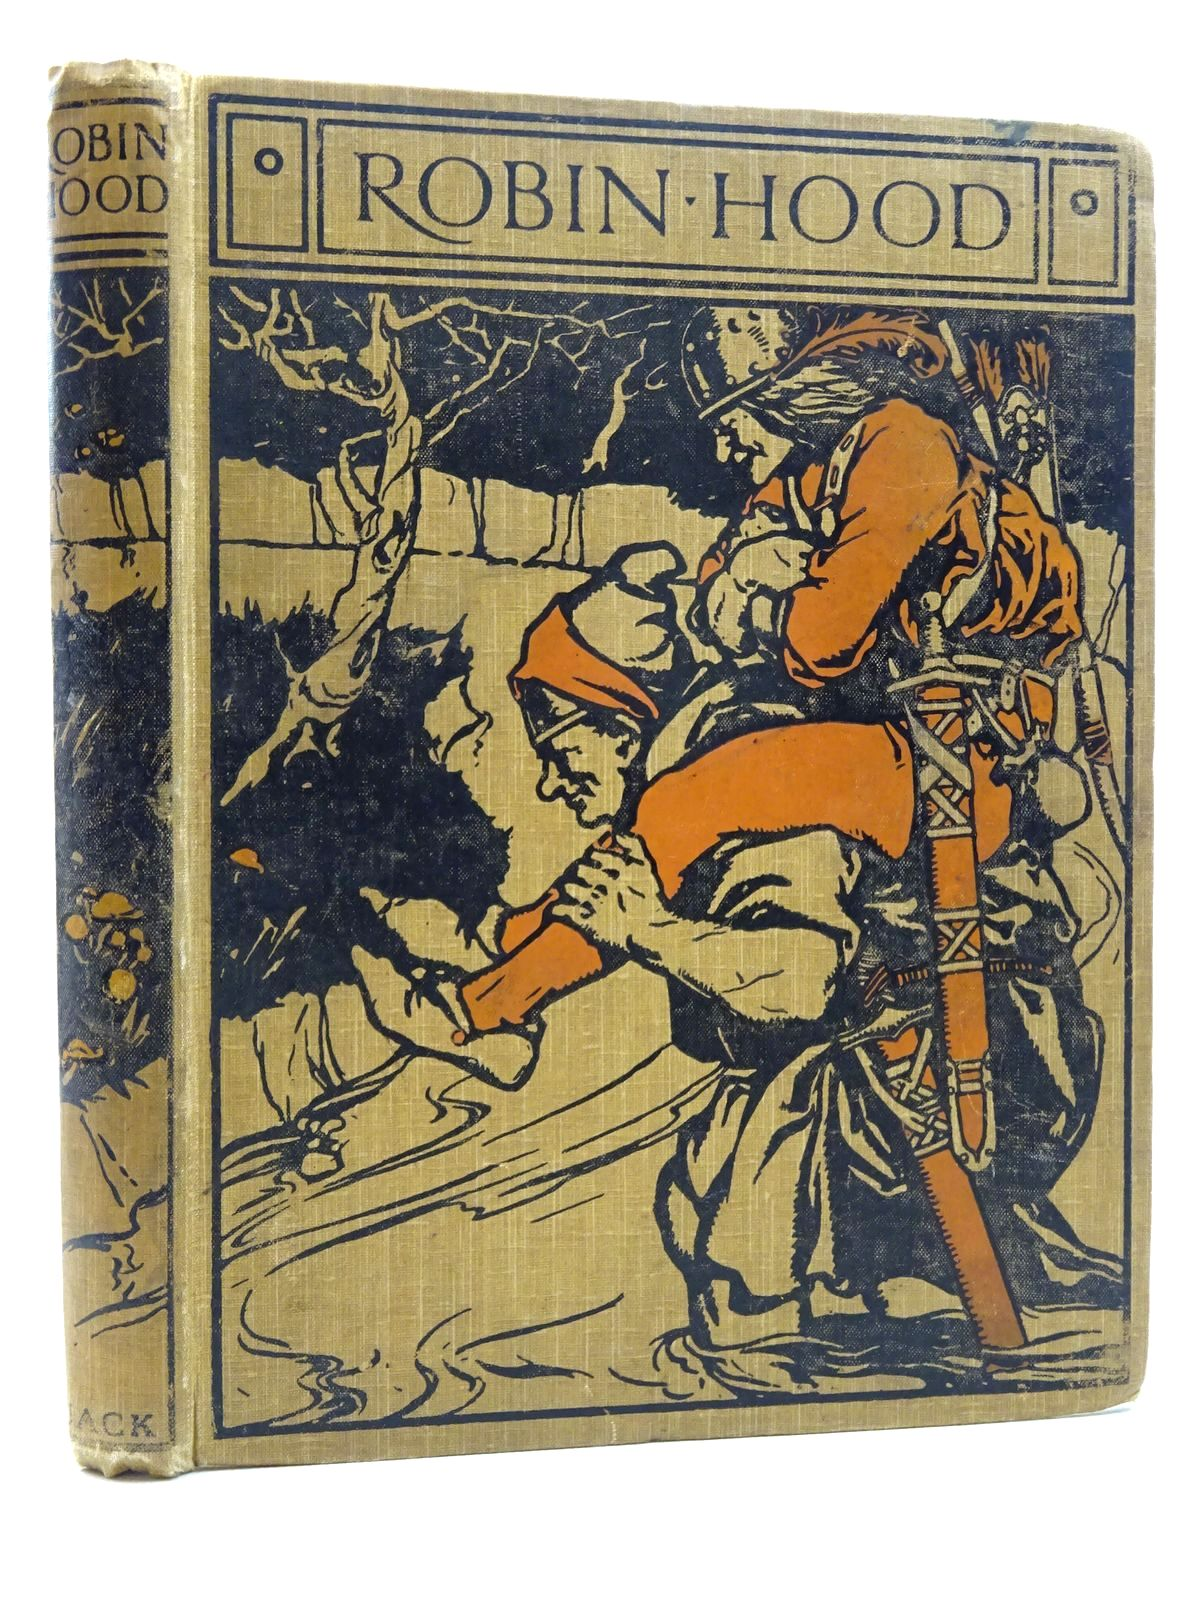 Photo of ROBIN HOOD: HIS DEEDS AND ADVENTURES AS RECOUNTED IN THE OLD ENLISH BALLADS written by Perkins, Lucy Fitch illustrated by Perkins, Lucy Fitch published by T.C. & E.C. Jack (STOCK CODE: 2125036)  for sale by Stella & Rose's Books